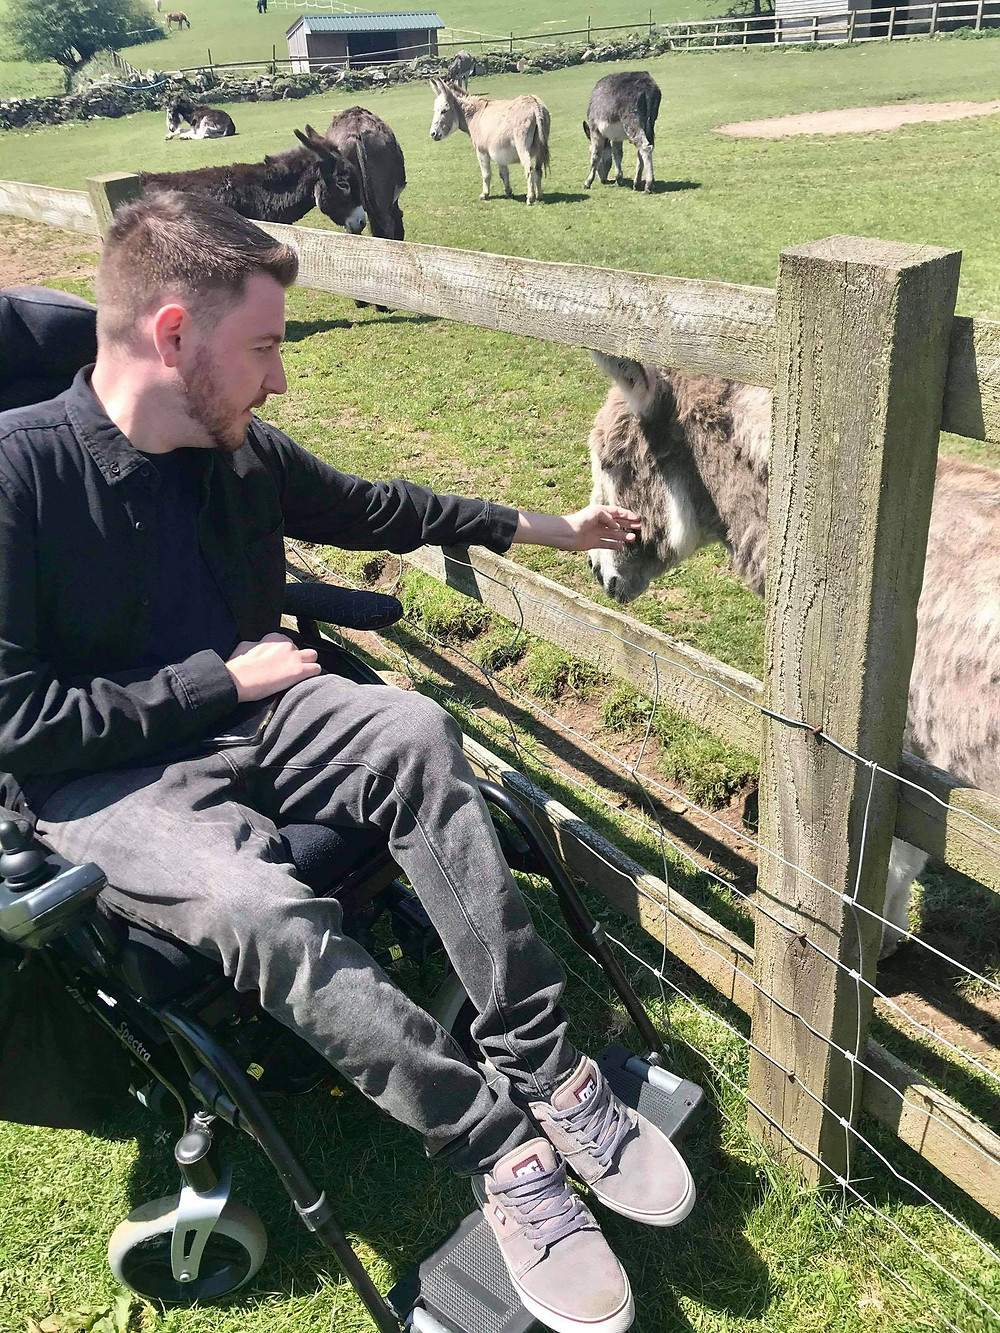 View of Ross sat in his wheelchair, reaching his arm into the donkey field to stroke one of them